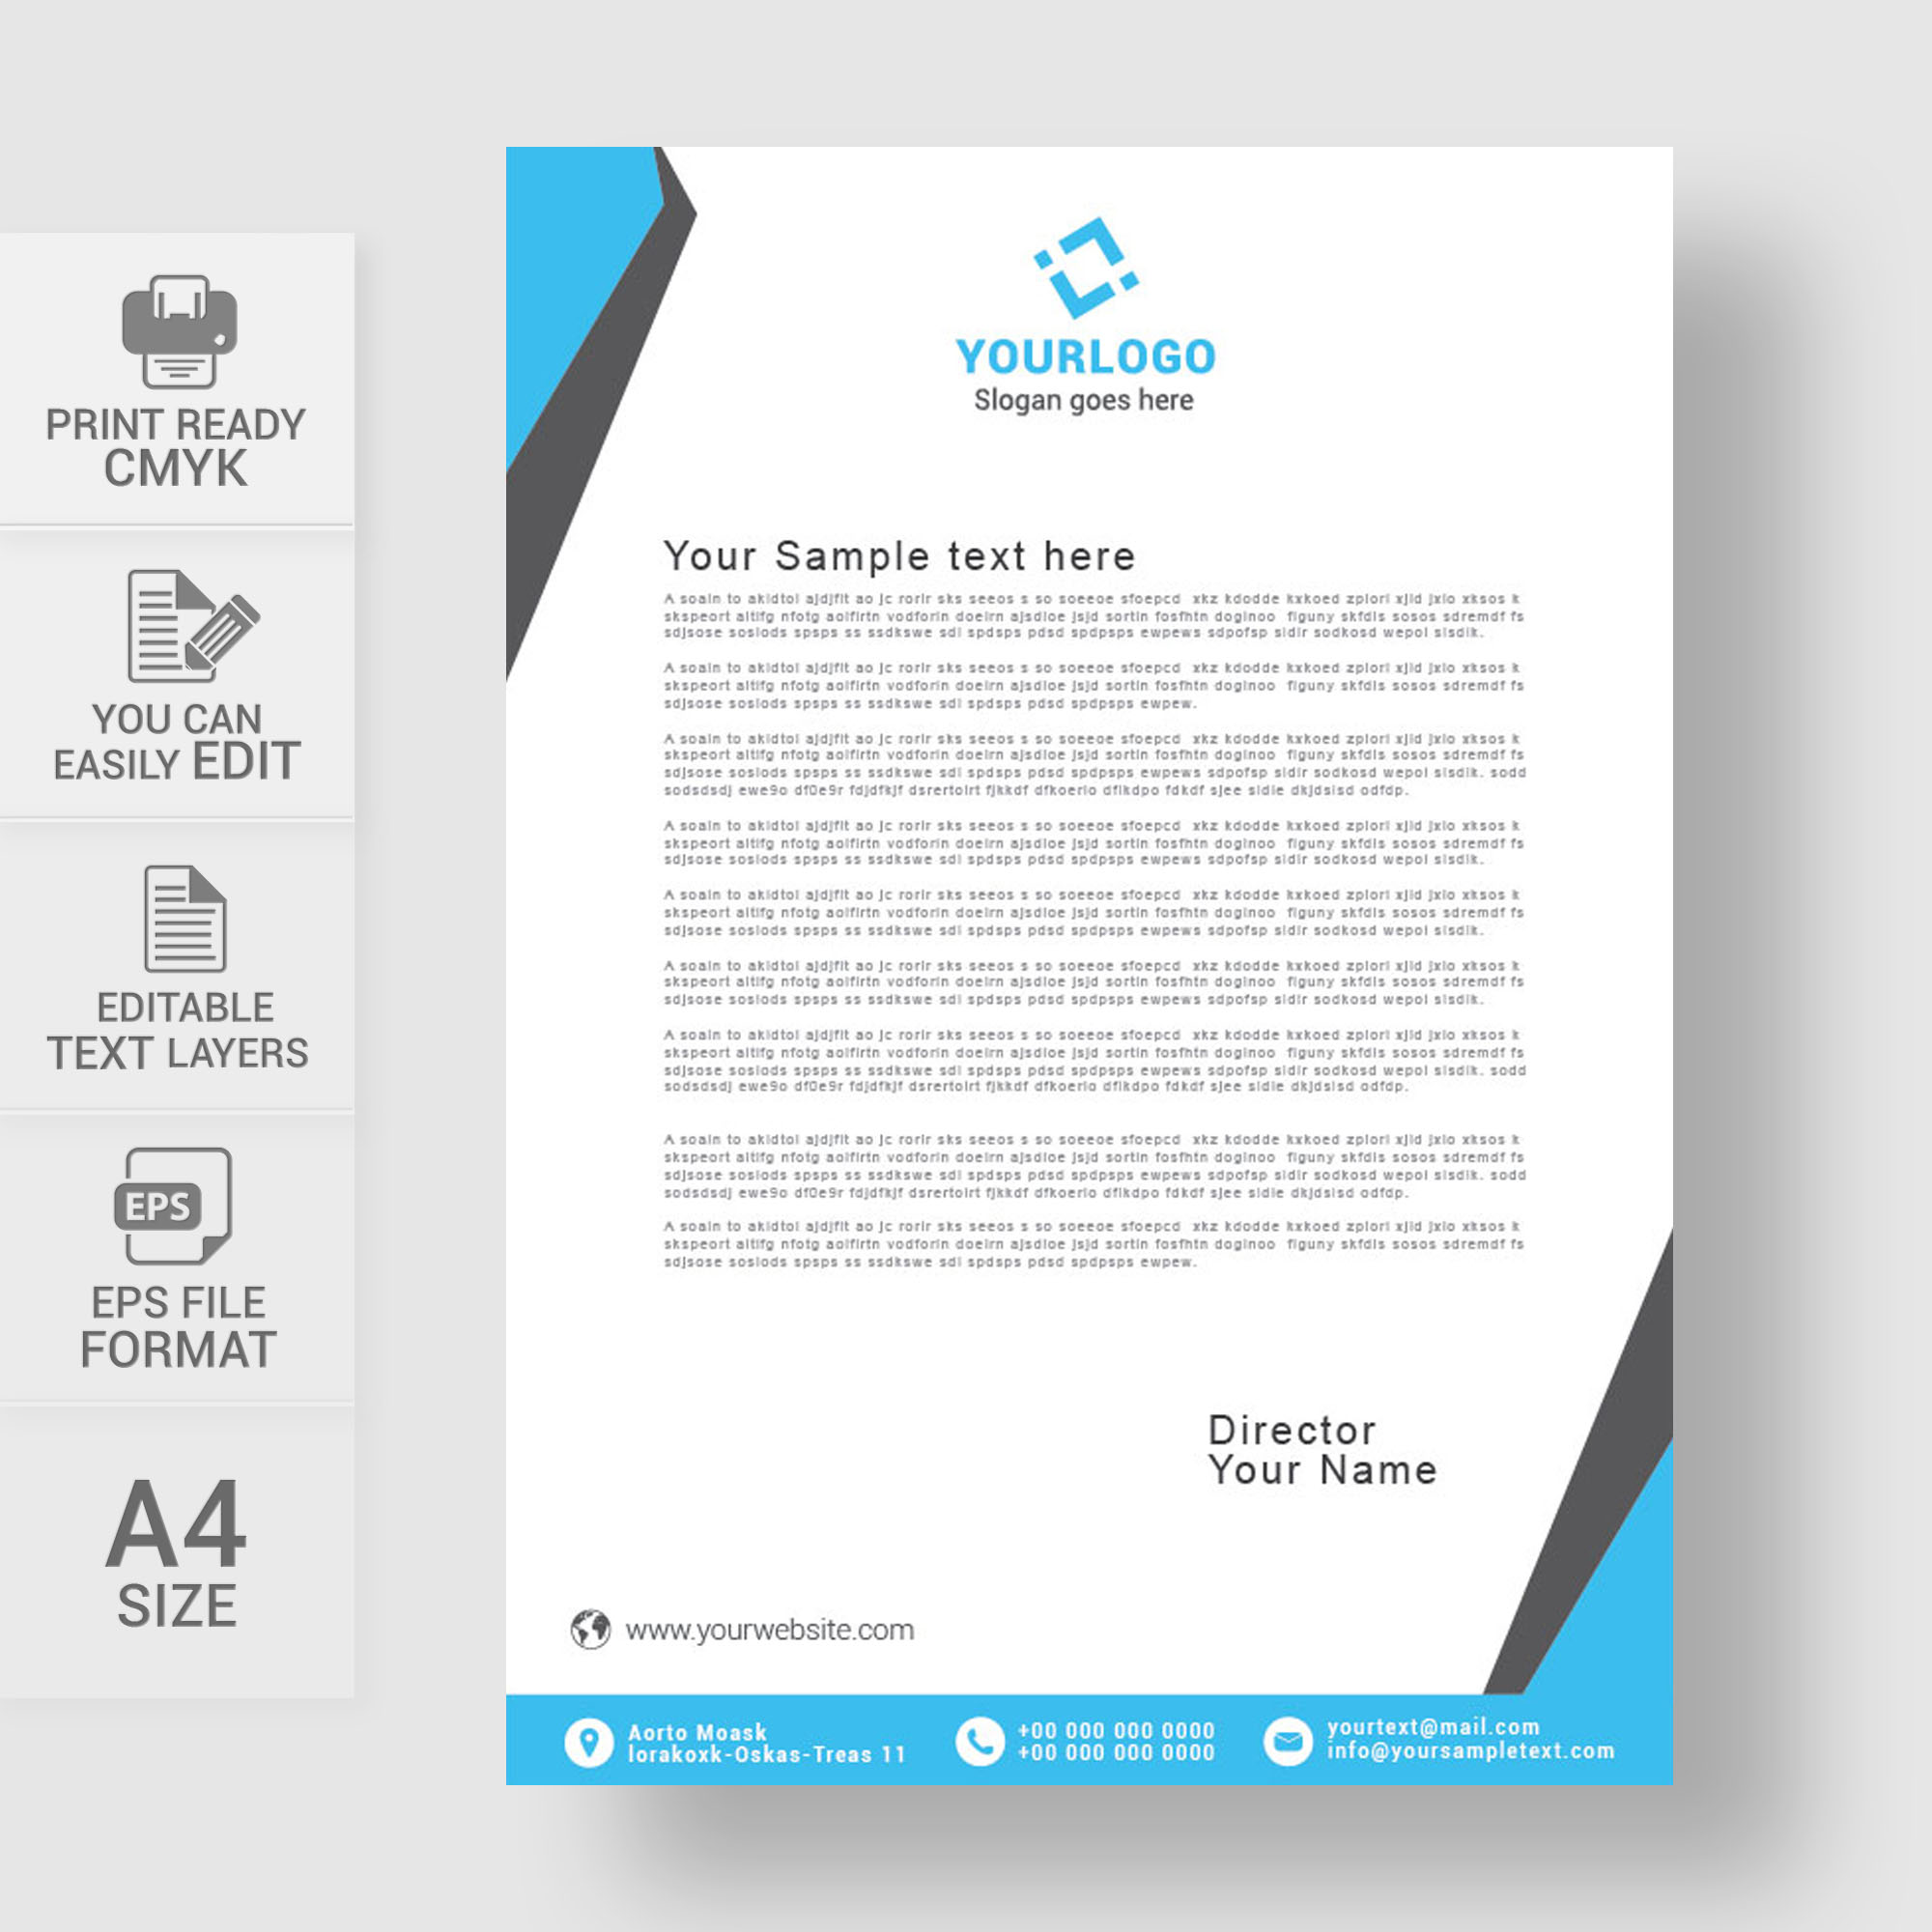 Letterheads, Letterhead Design, Letterhead Template, Print Template,  Vector, Abstract, Business  Business Letterhead Samples